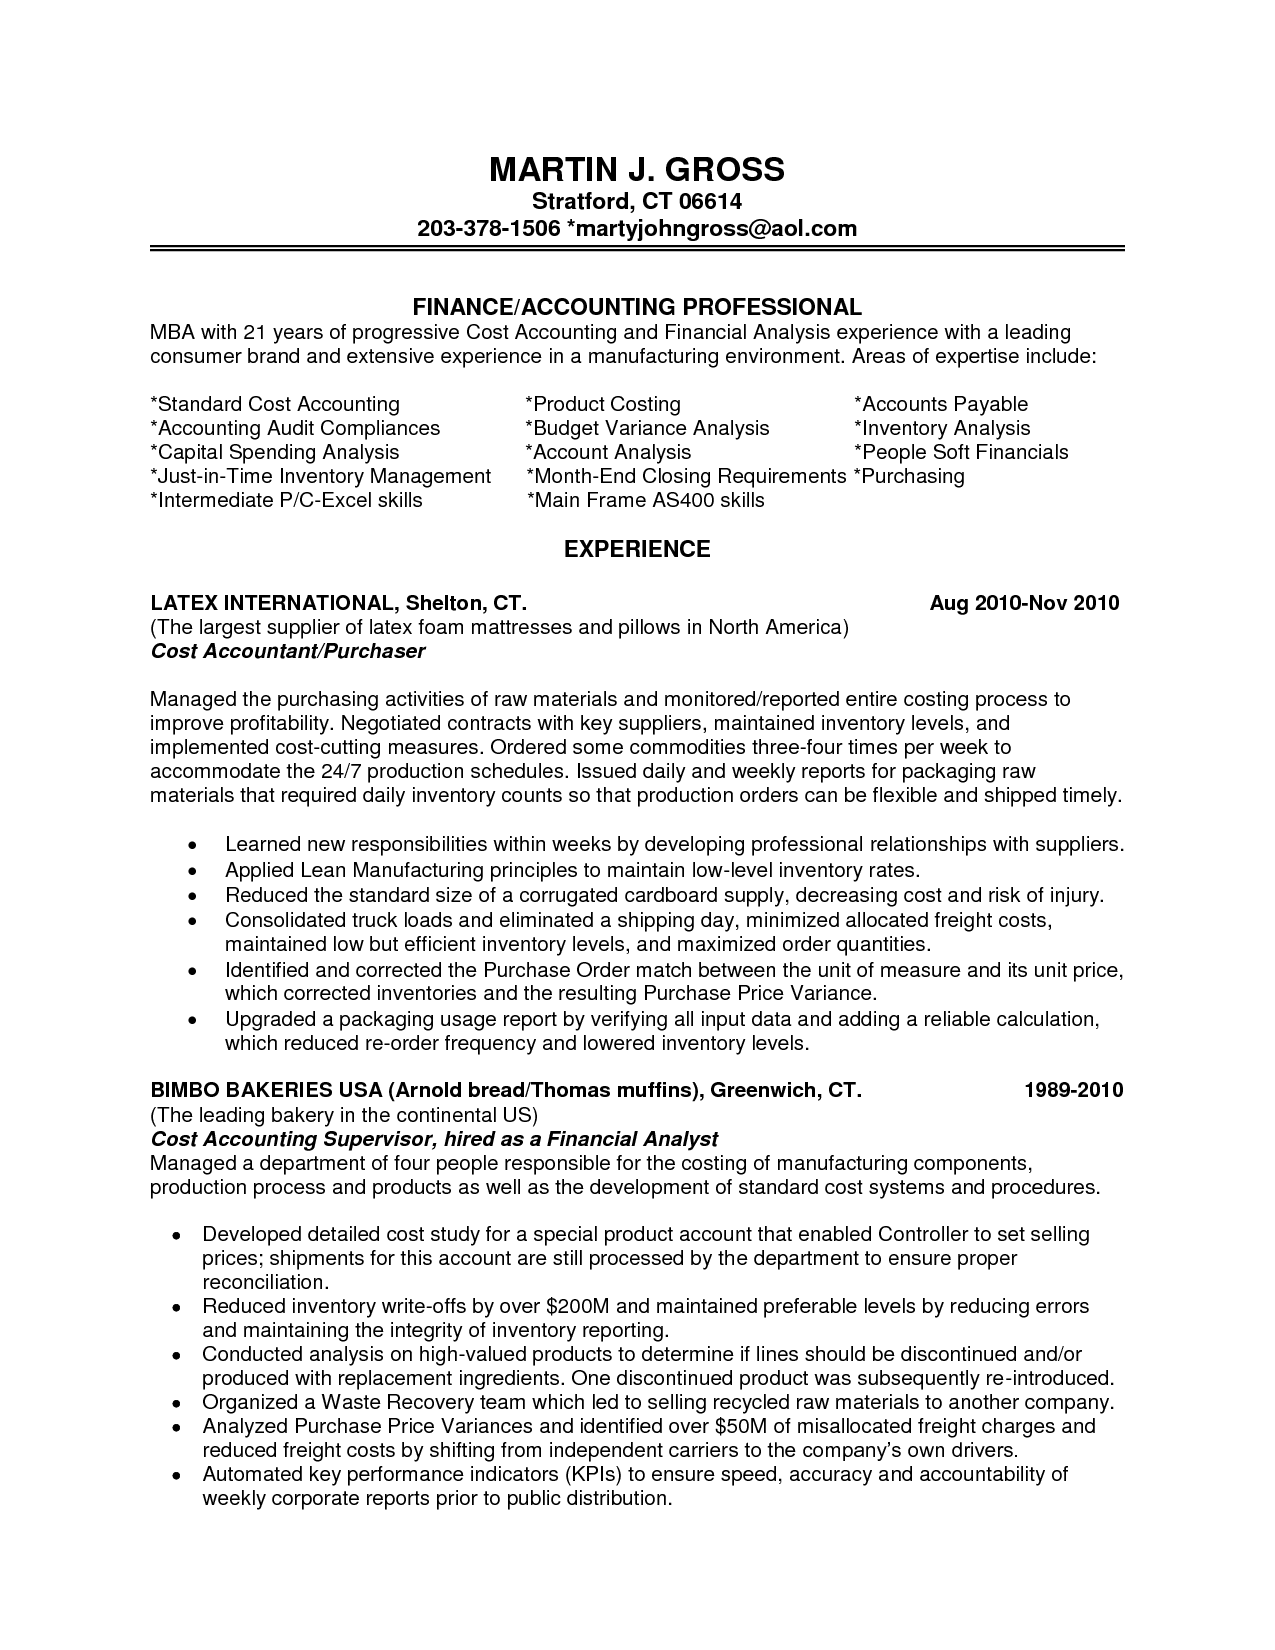 resume objective financial analyst